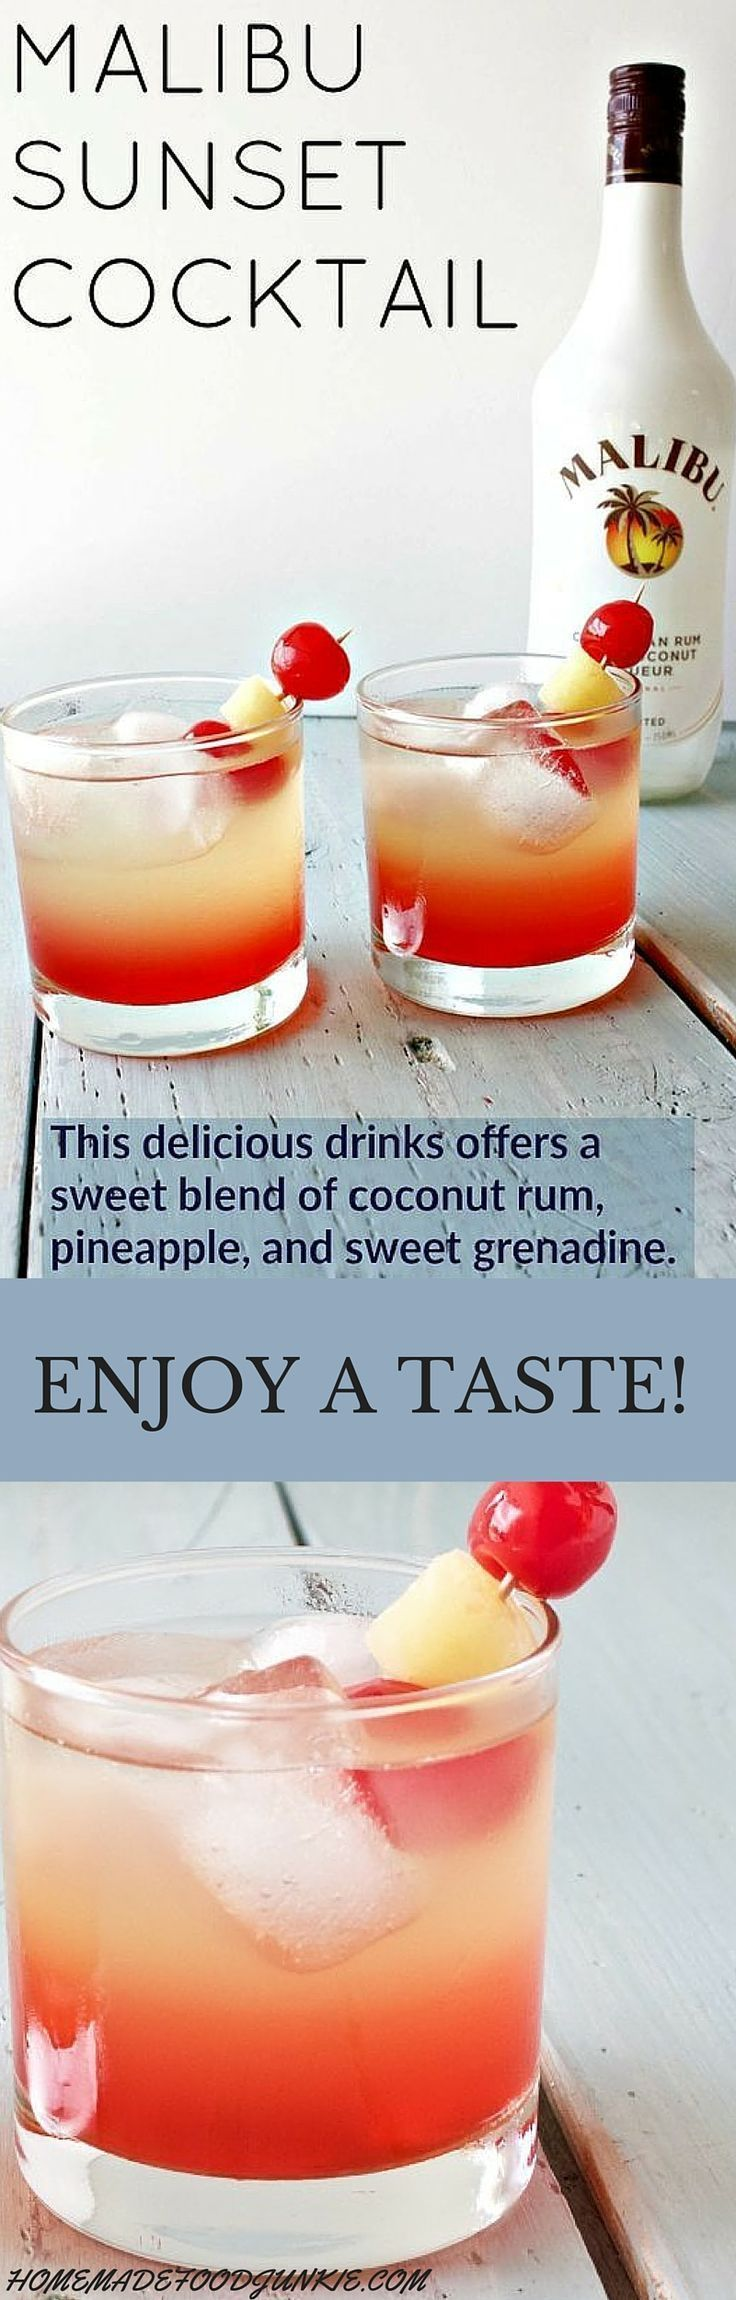 Delicious and refreshing Malibu sunset cocktail. This easy to make, lovely drink offers a beautiful blend of coconut rum, pineapple, and sweet grenadine.